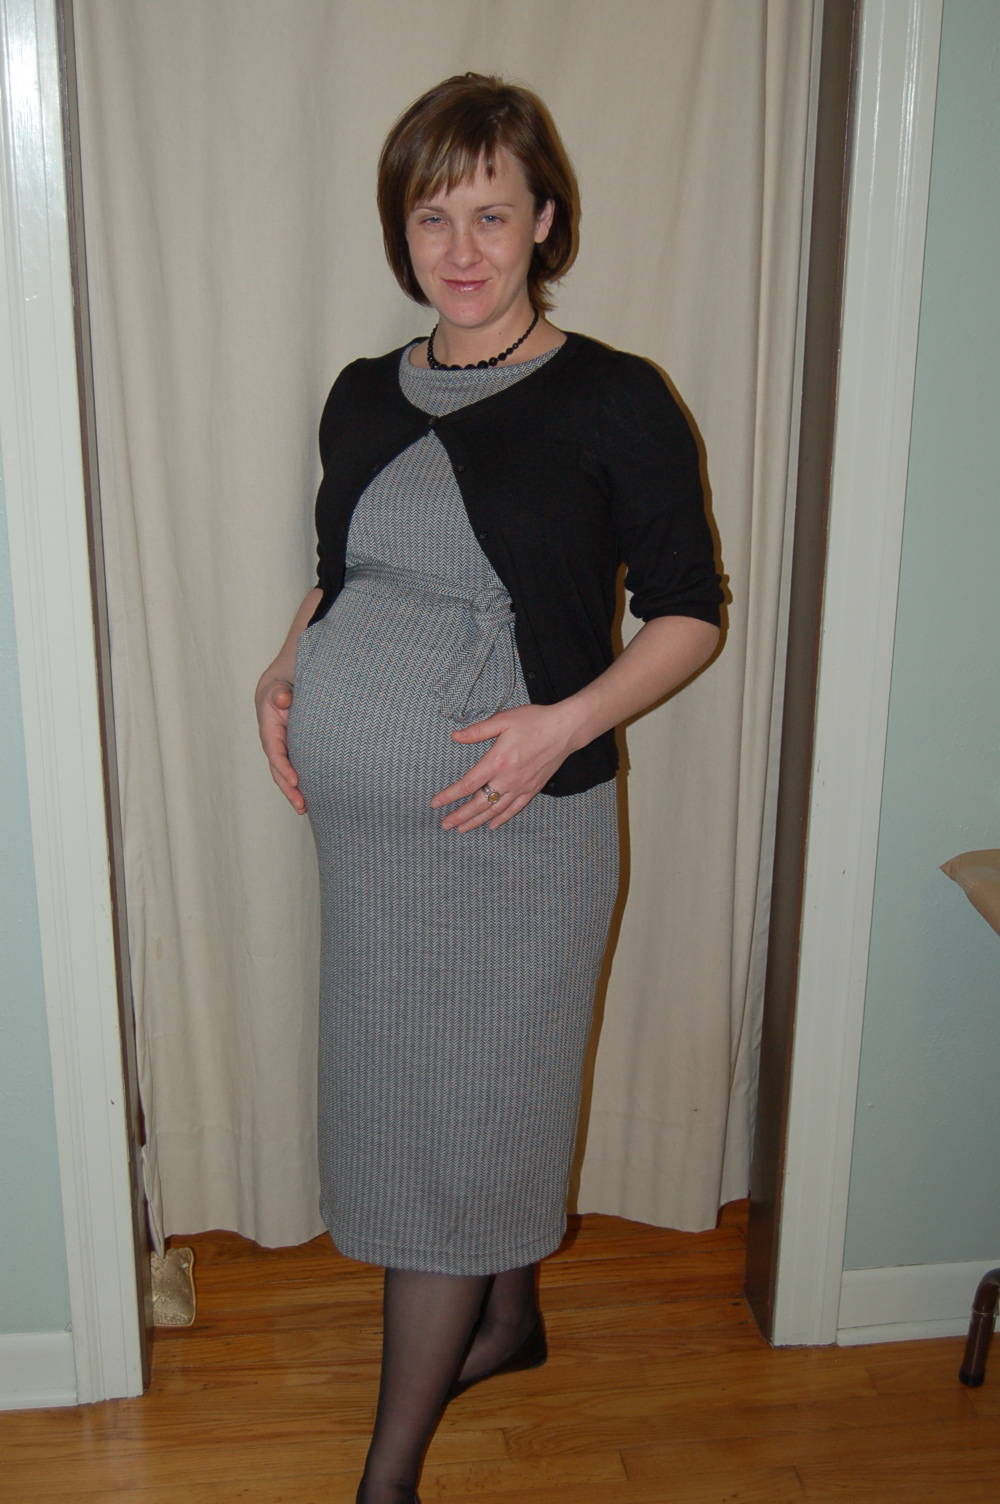 Pregnant in pantyhose